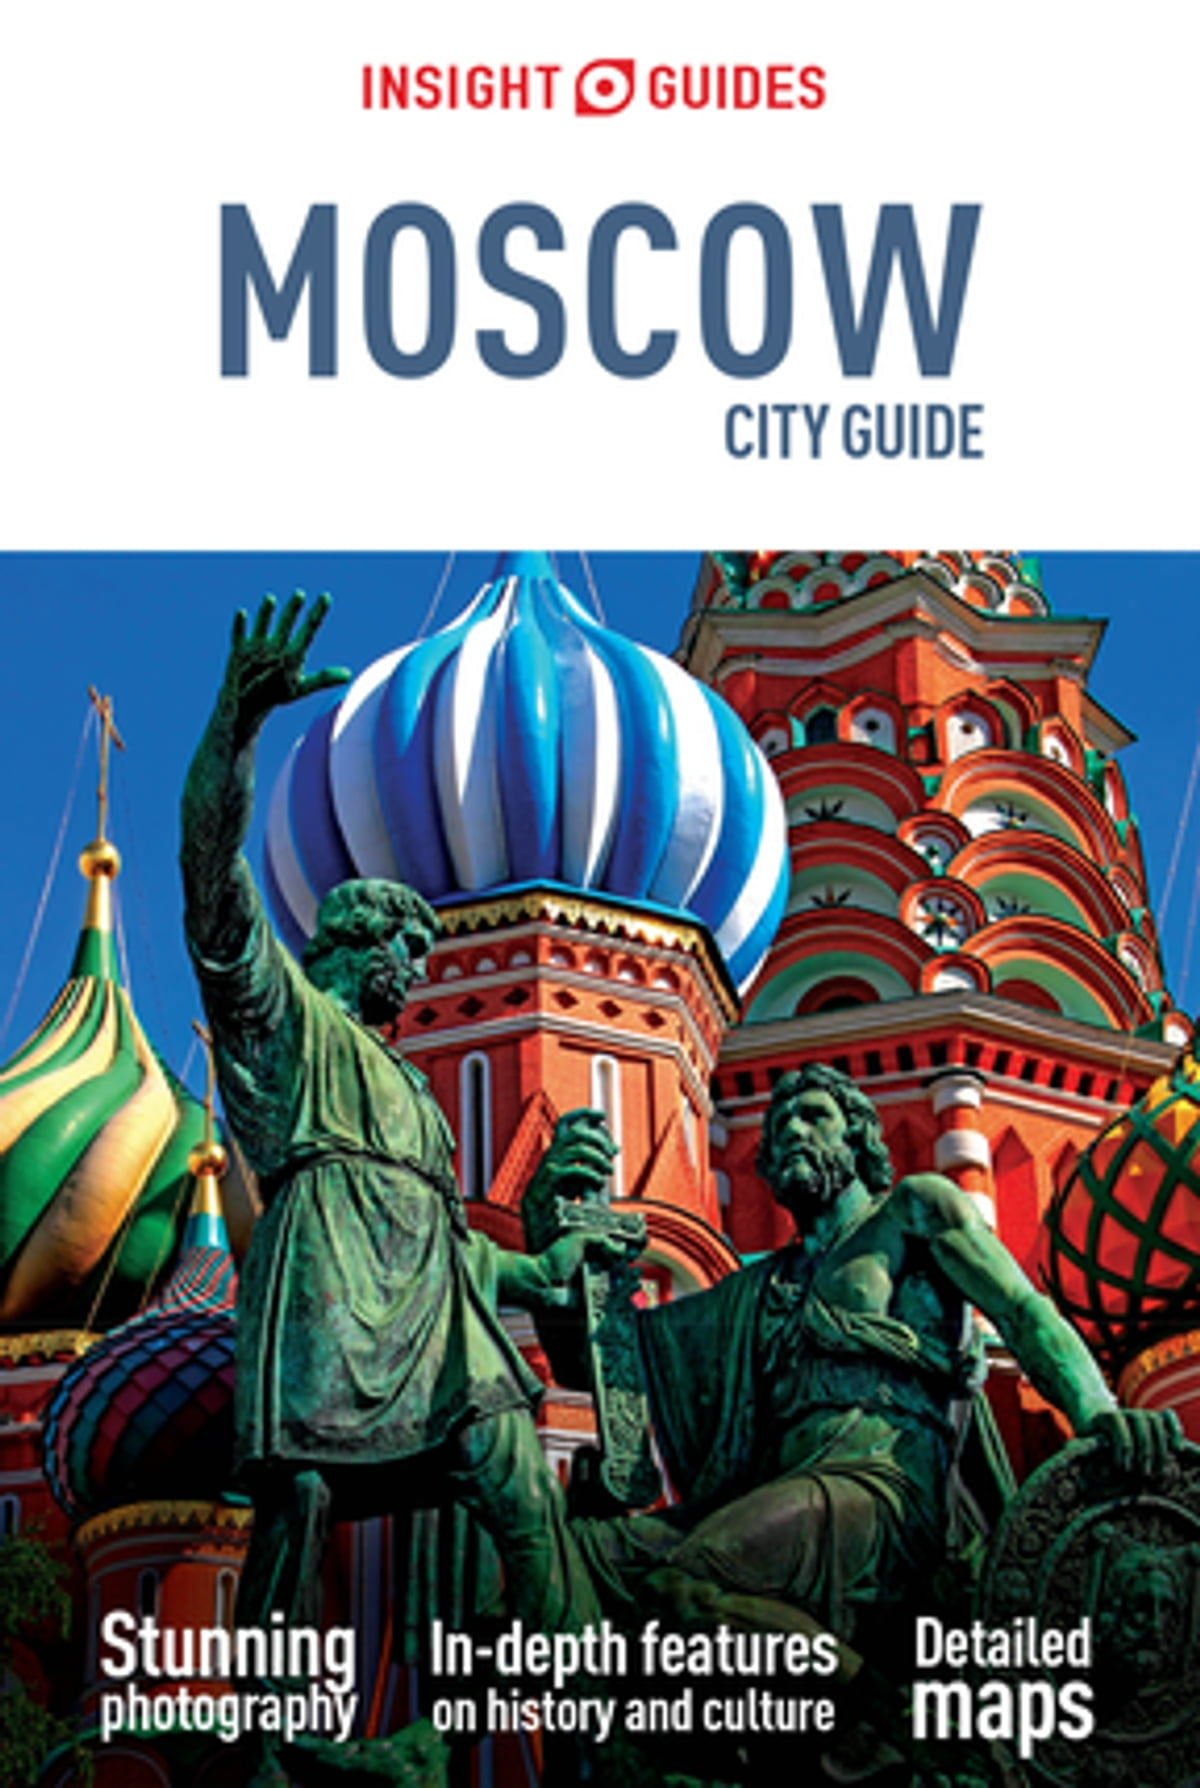 Insight Guides City Guide Moscow eBook by Insight Guides - 9781786716699 |  Rakuten Kobo